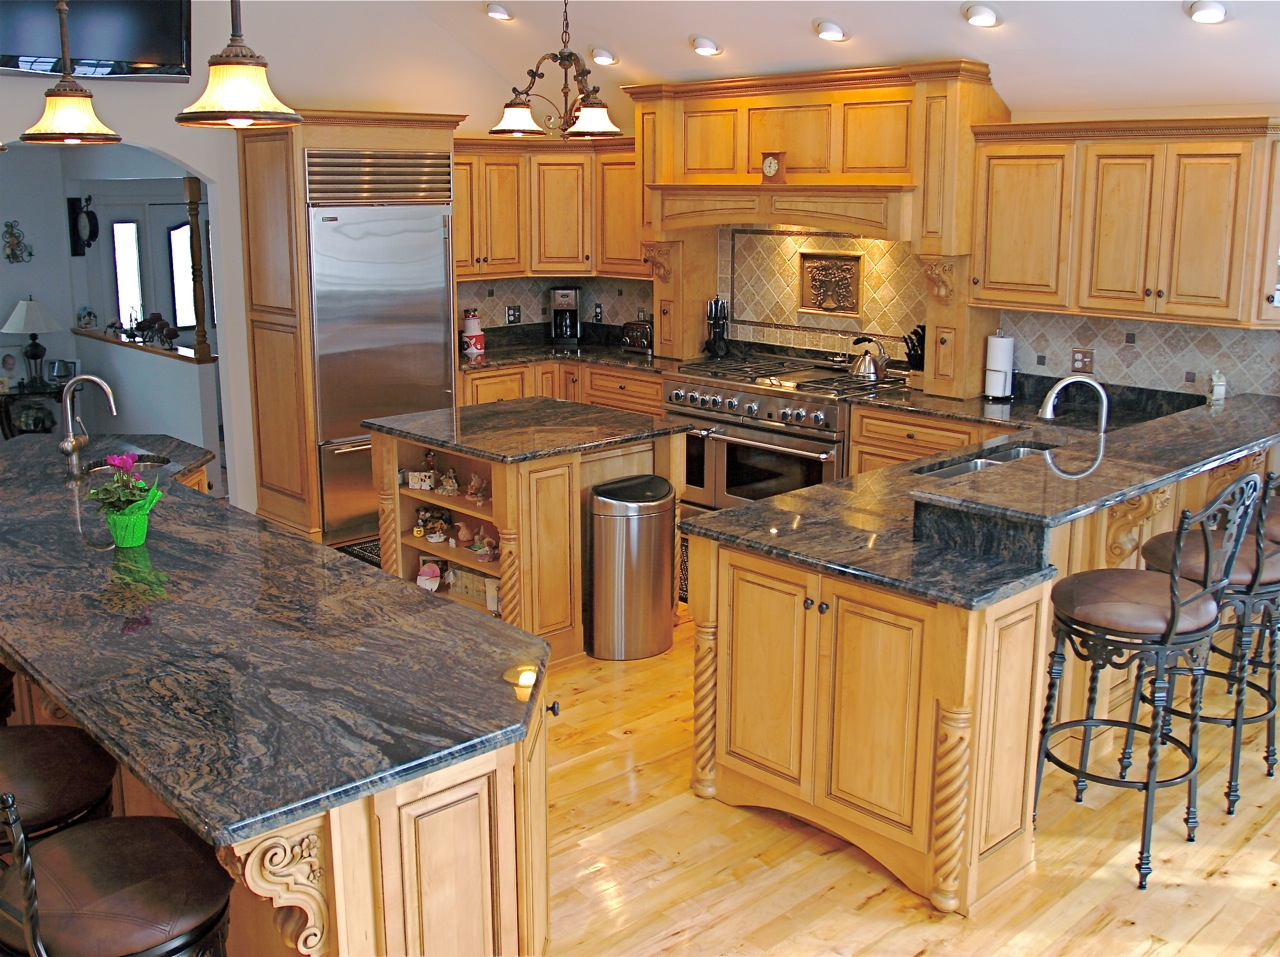 saura for contemporary awesome dutt stones kitchen best to granite countertop countertops glue v how